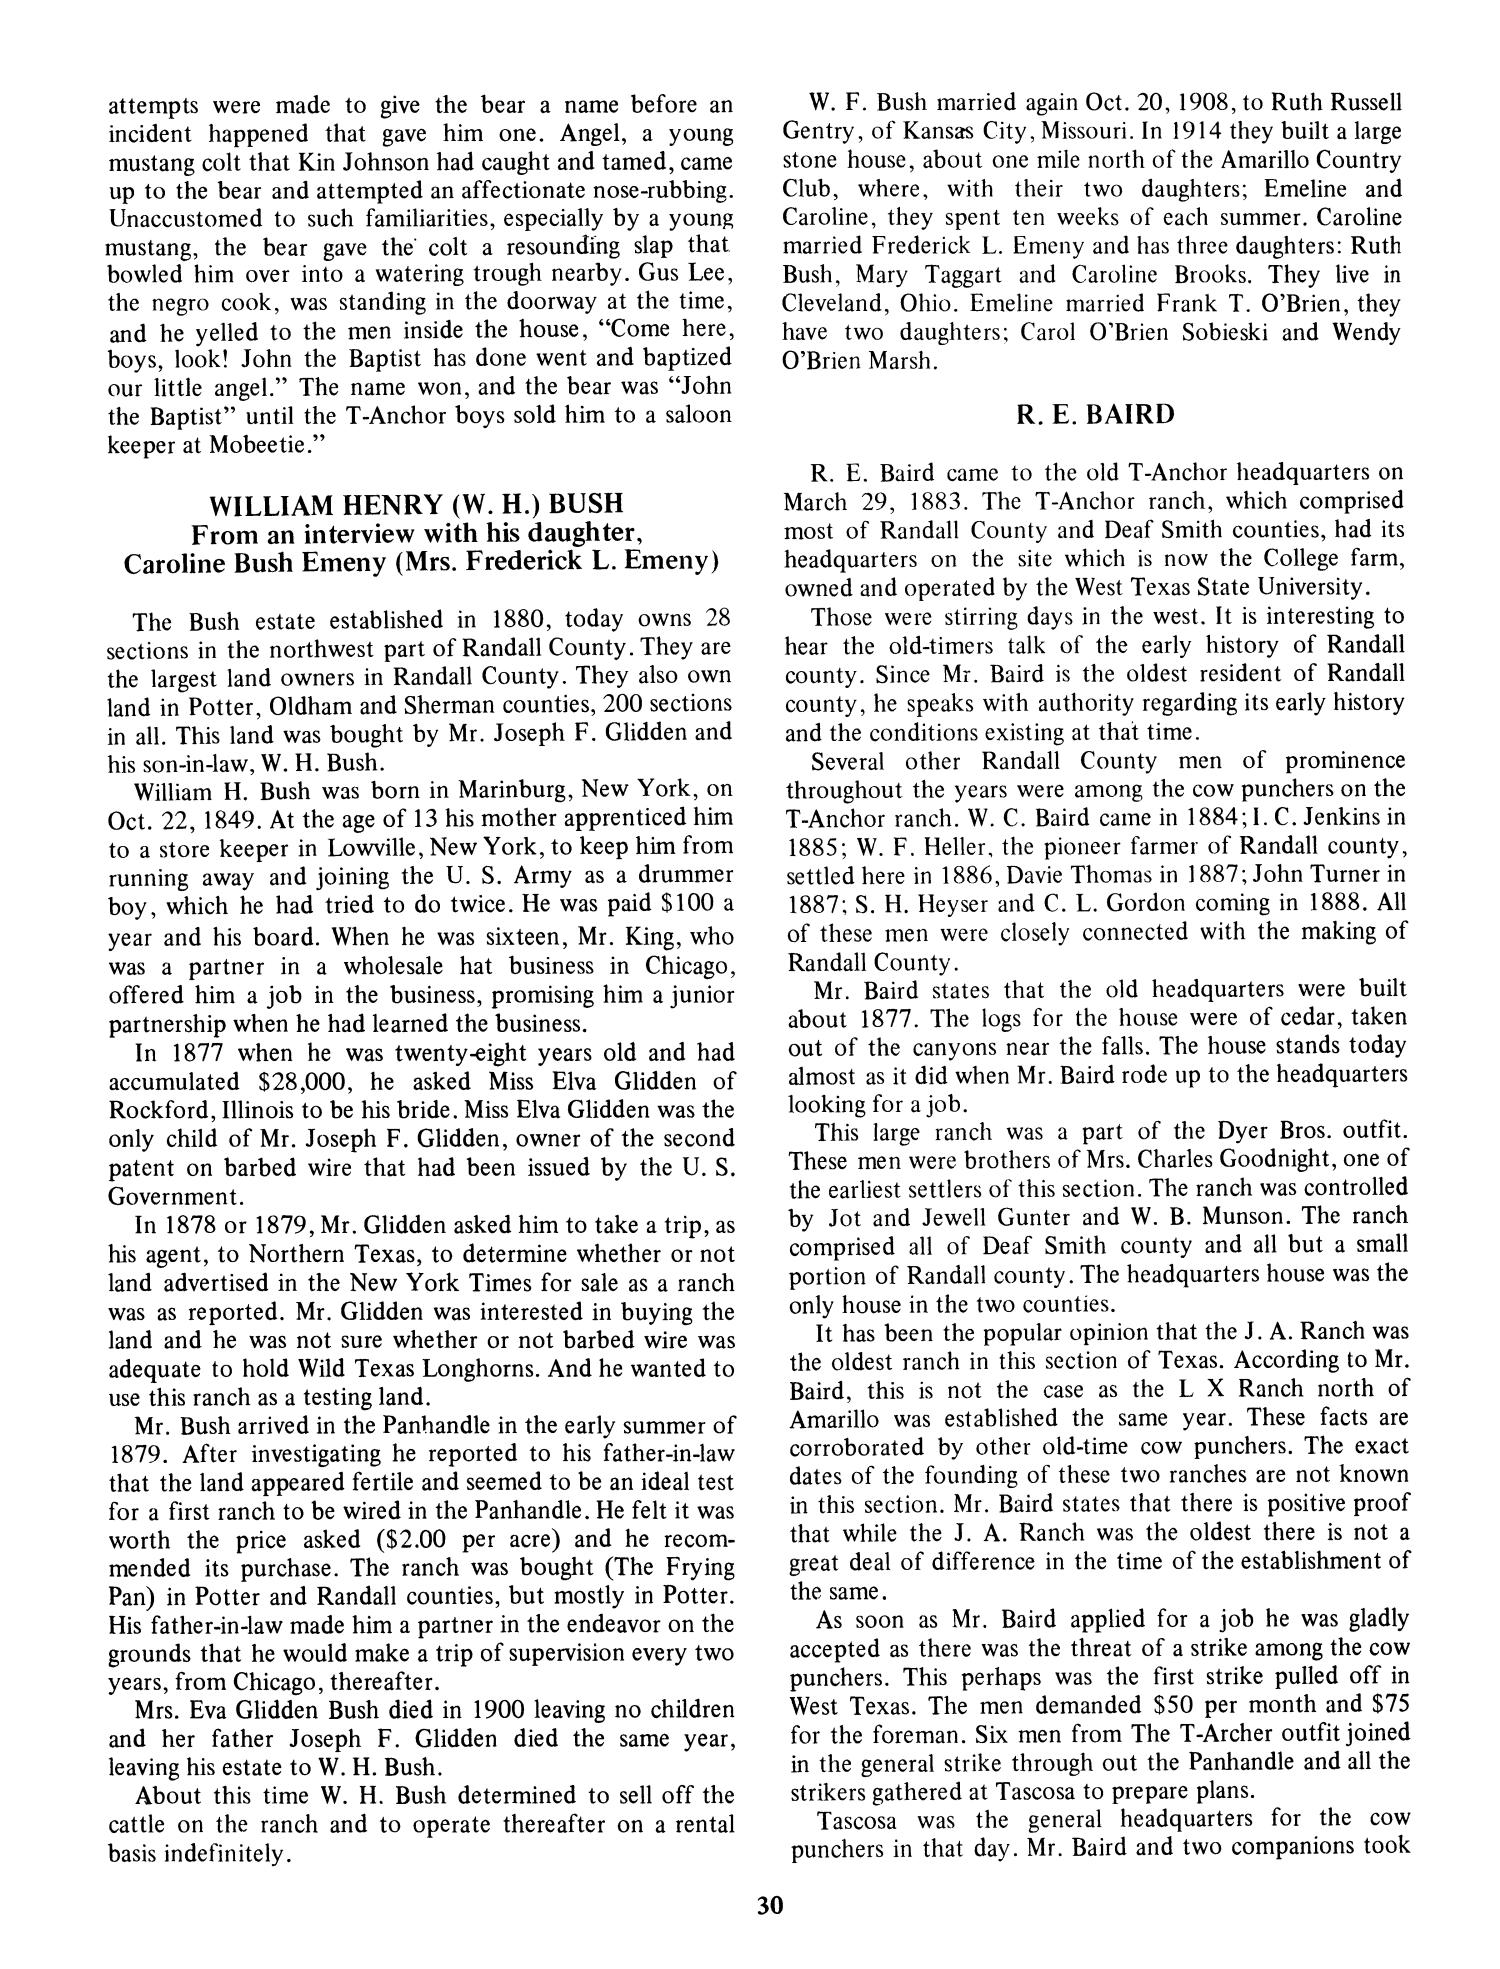 Kansas jewell county randall - The Randall County Story From 1541 To 1910 Page 30 The Portal To Texas History